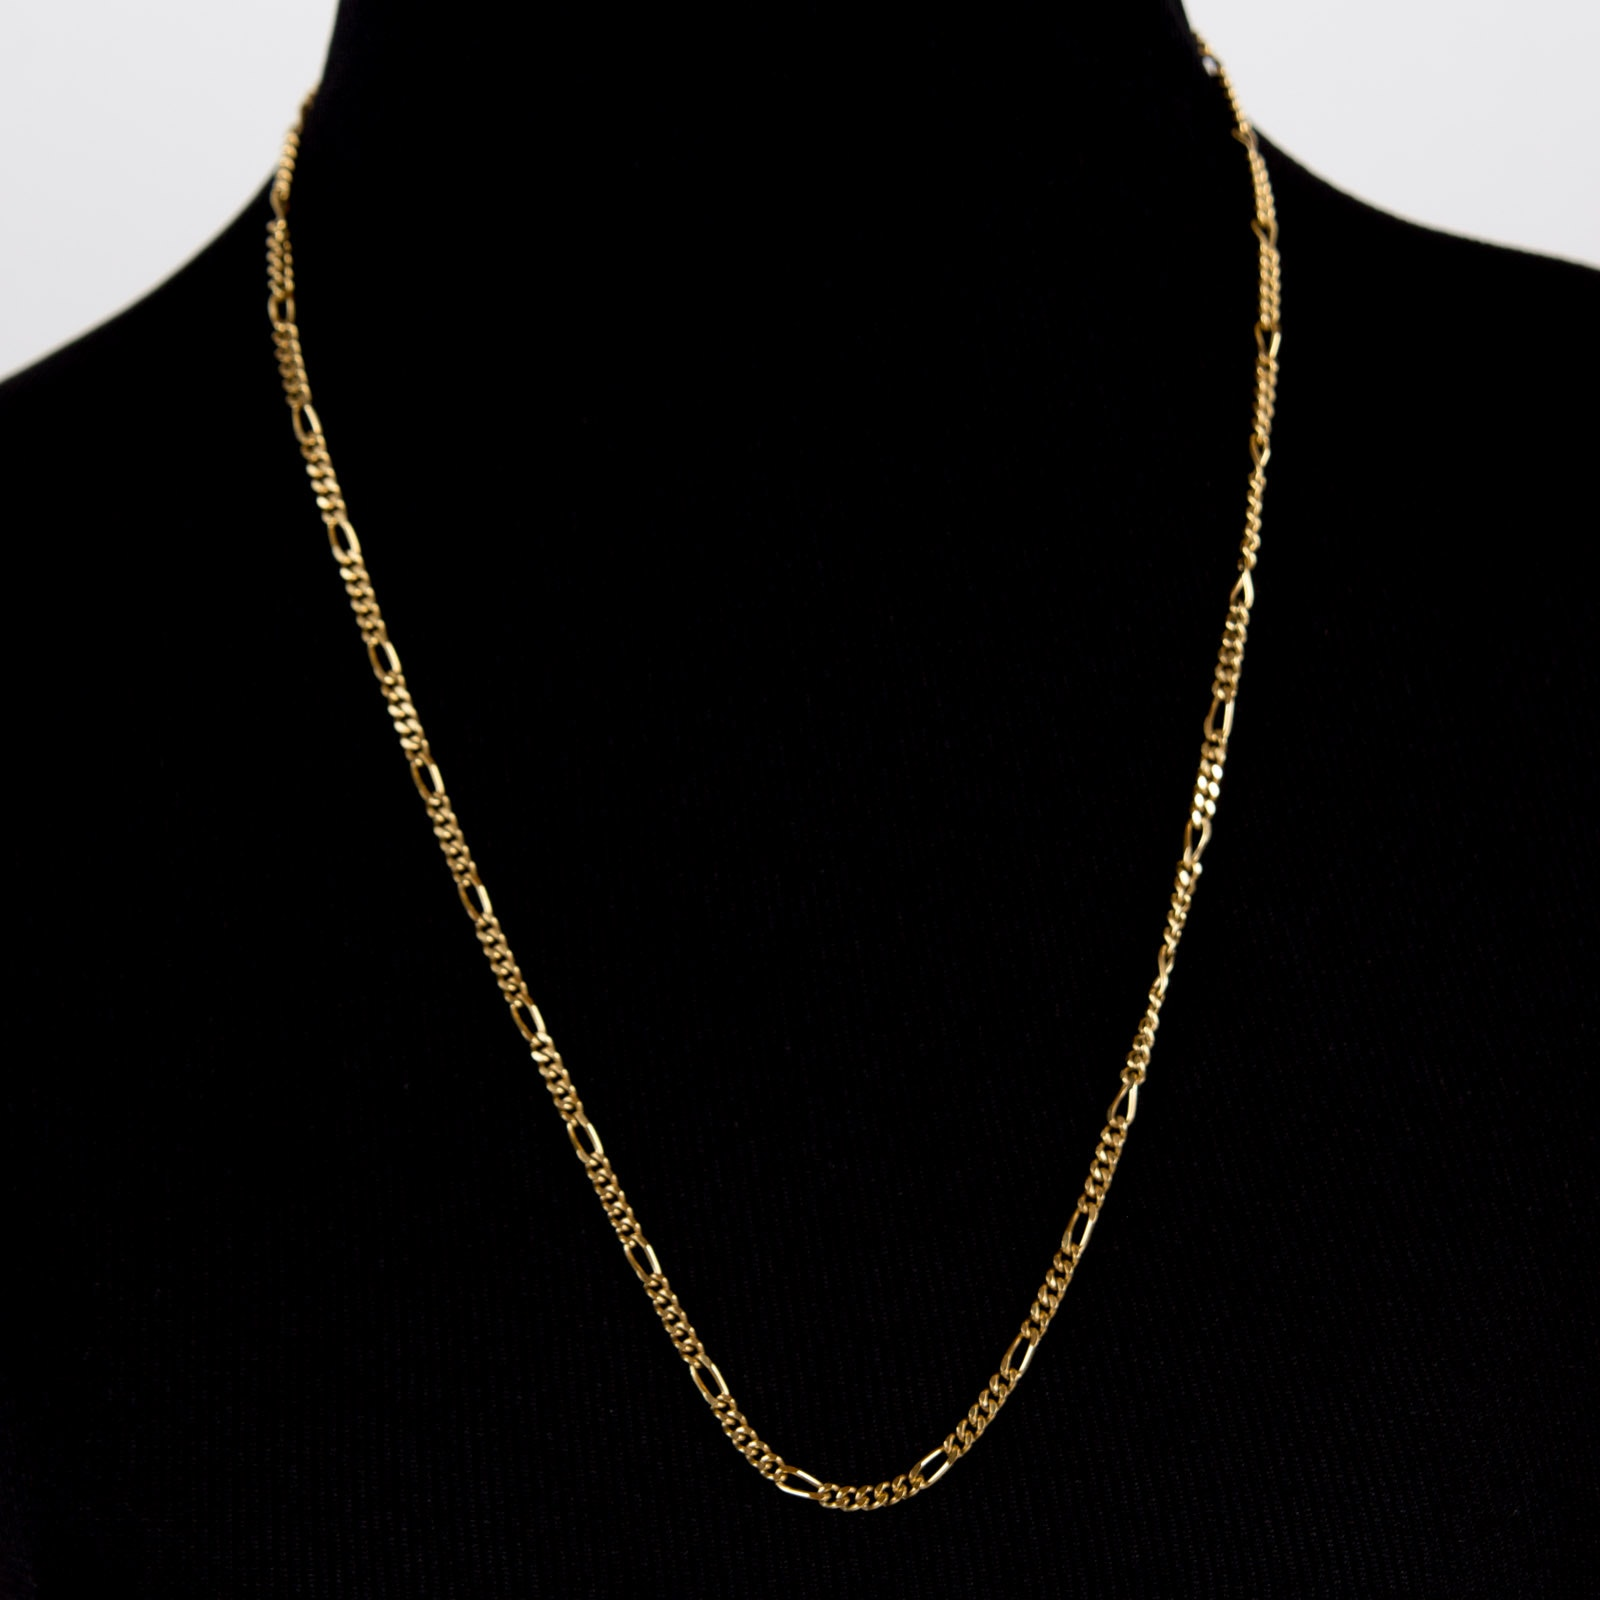 18K Yellow Gold Chain with 14K Yellow Gold Clasp